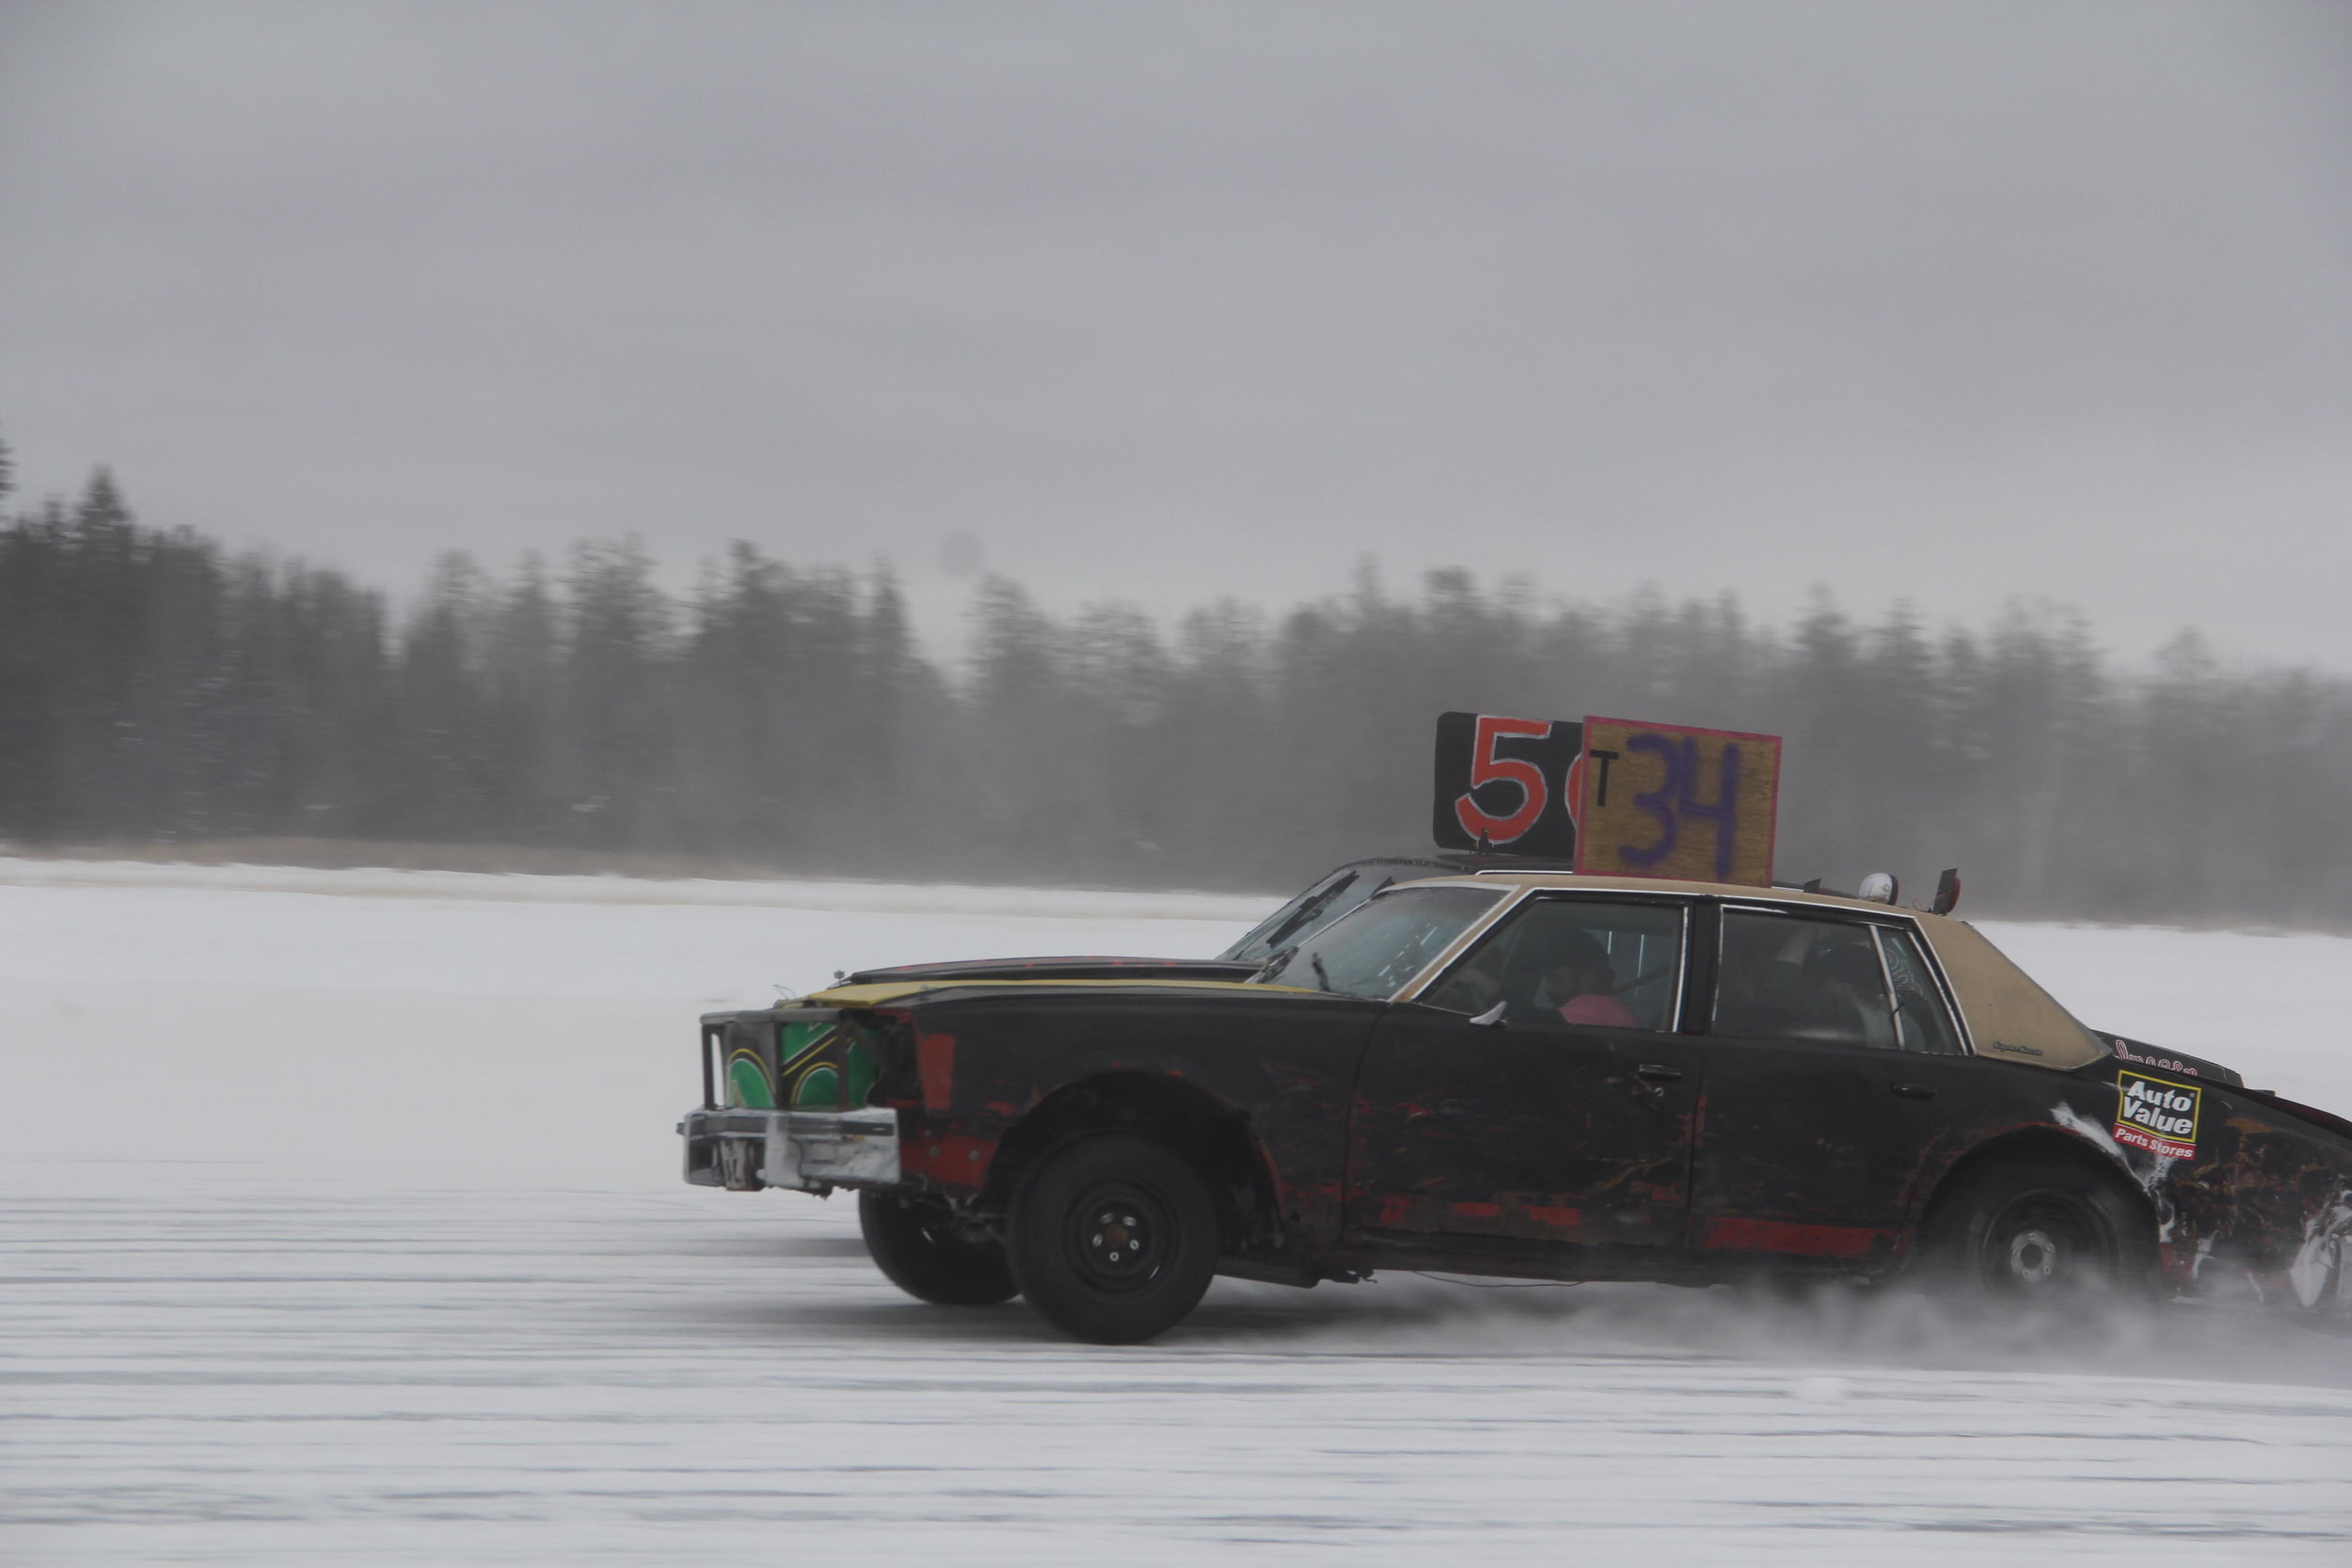 In the second set feature of the B class during Sunday's Garfield Lake ice races, it was a photo finish between Chris Roller (No. 34) and Reid Watson (No. 50). Roller was declared the winner. (Dennis Peterson | Special to the Pioneer)